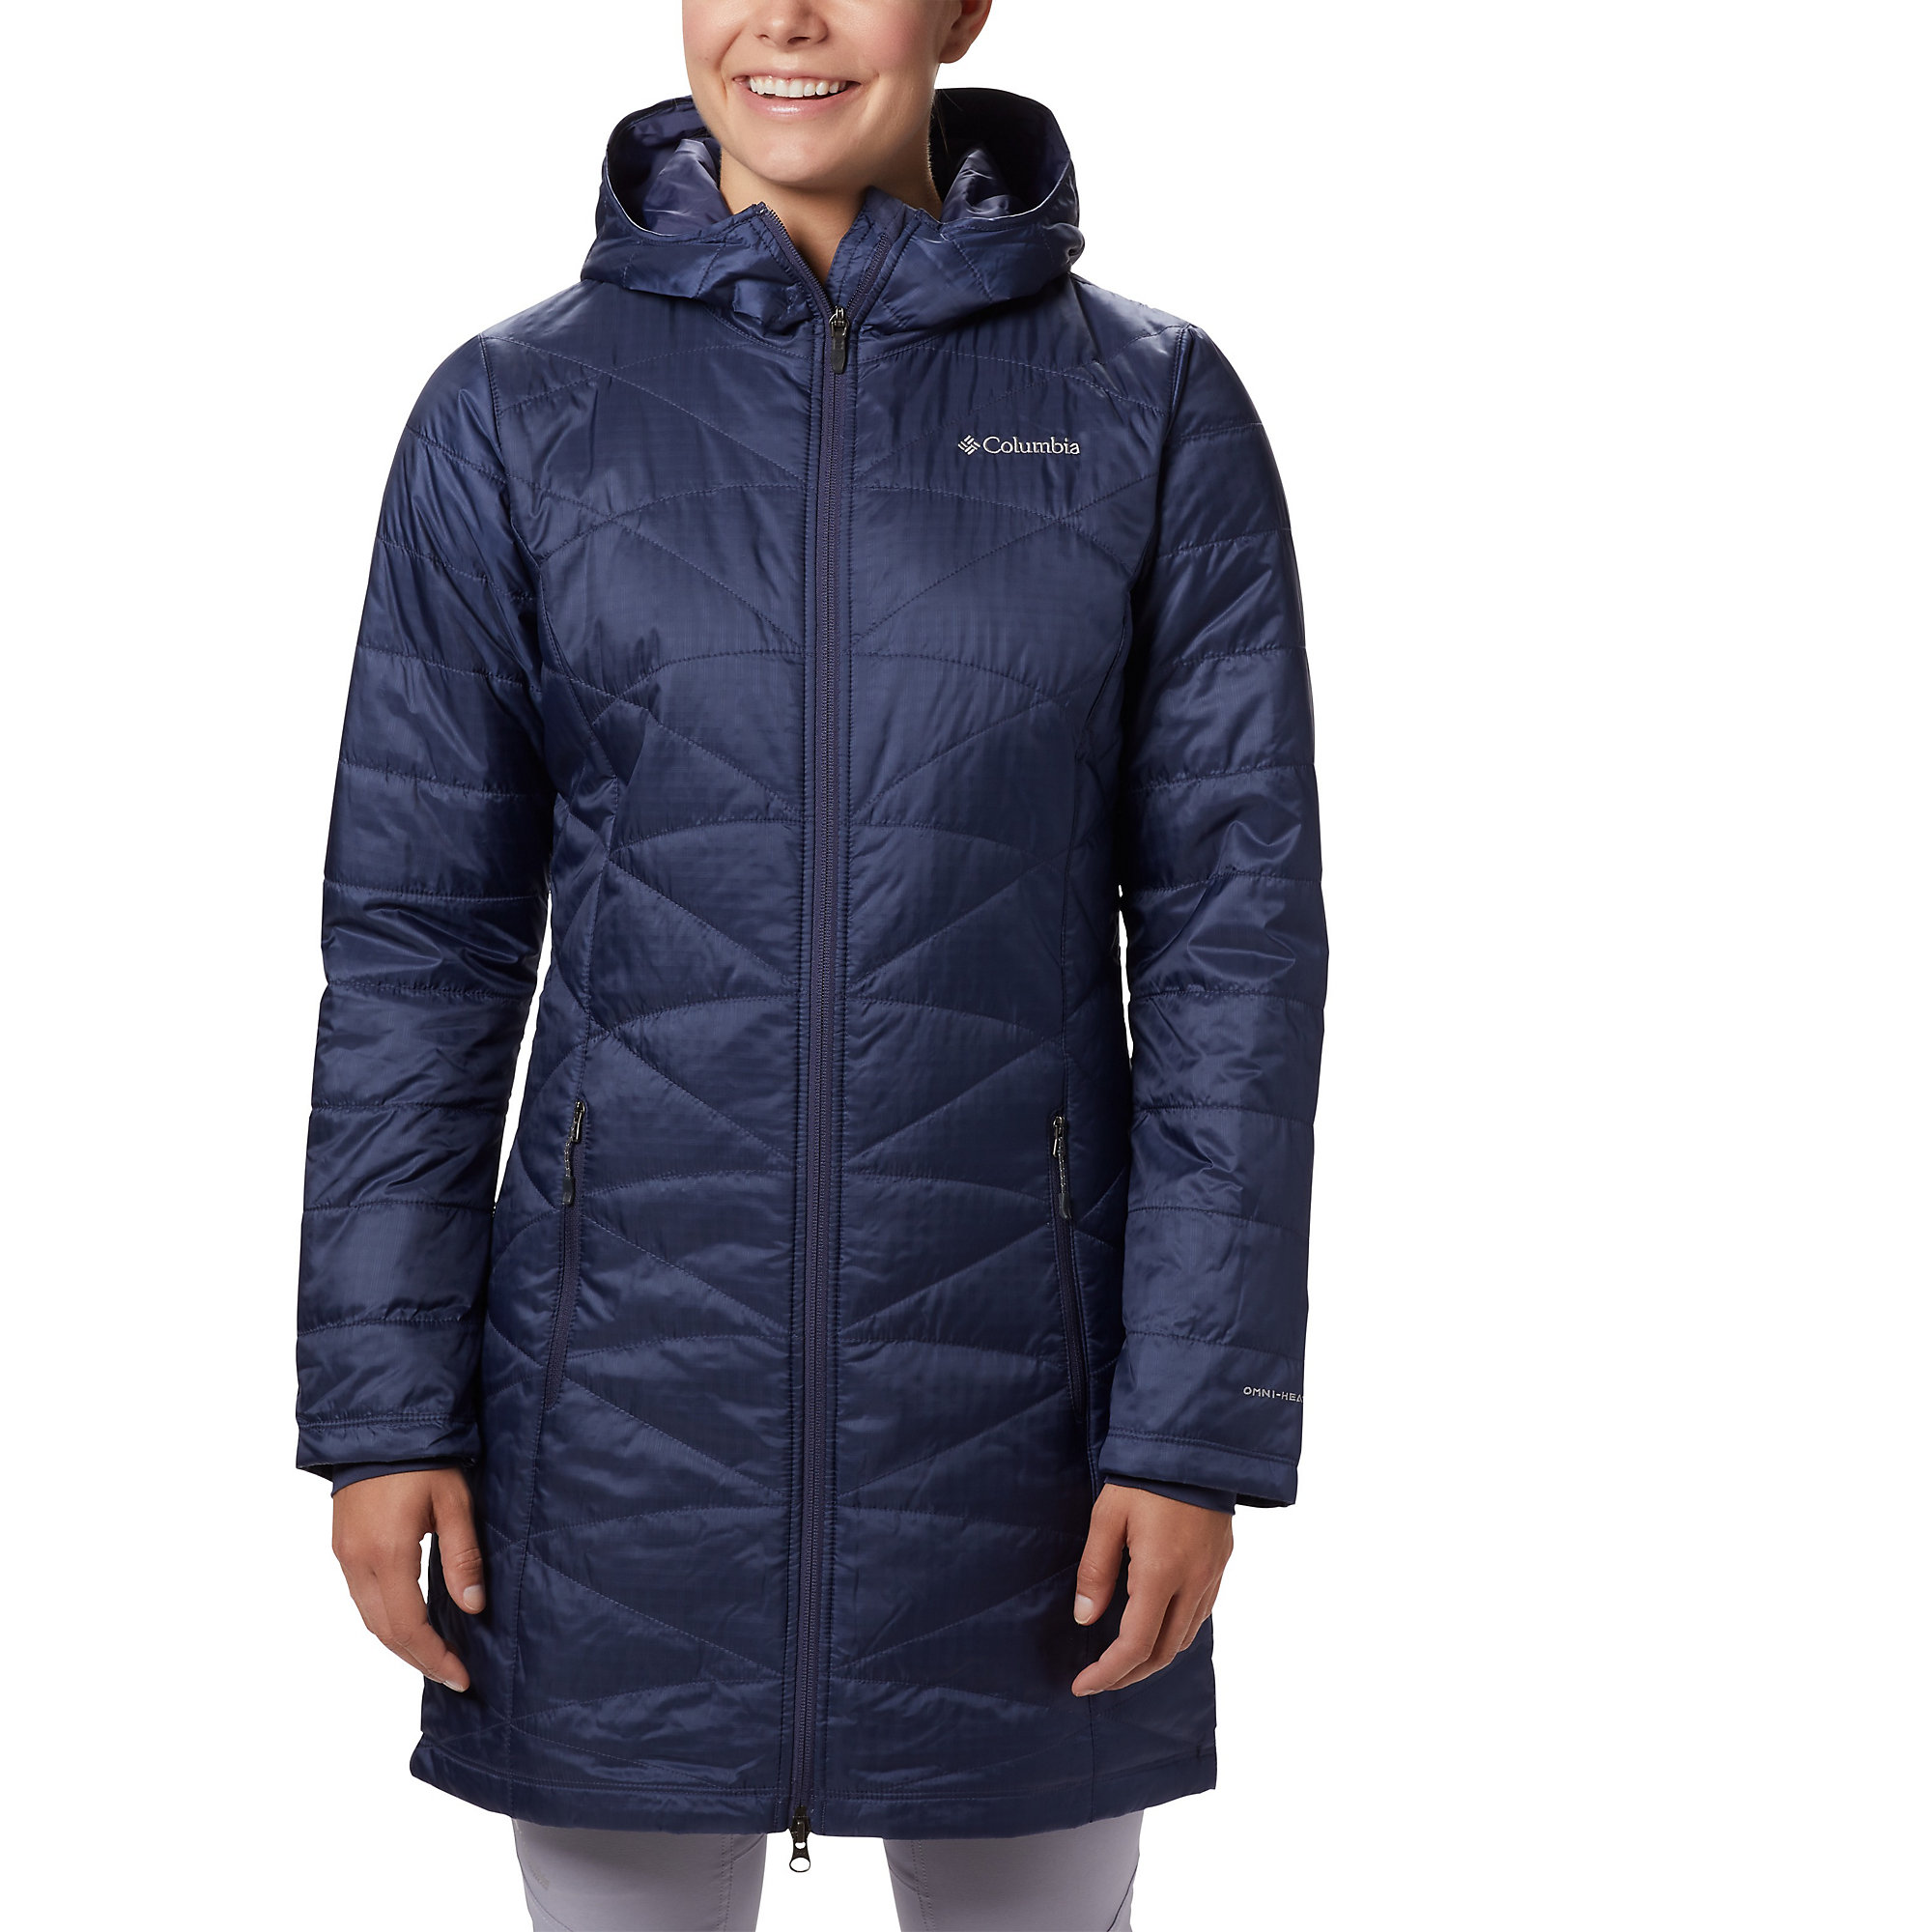 Columbia Mighty Lite Hooded Insulated Winter Jacket Coat